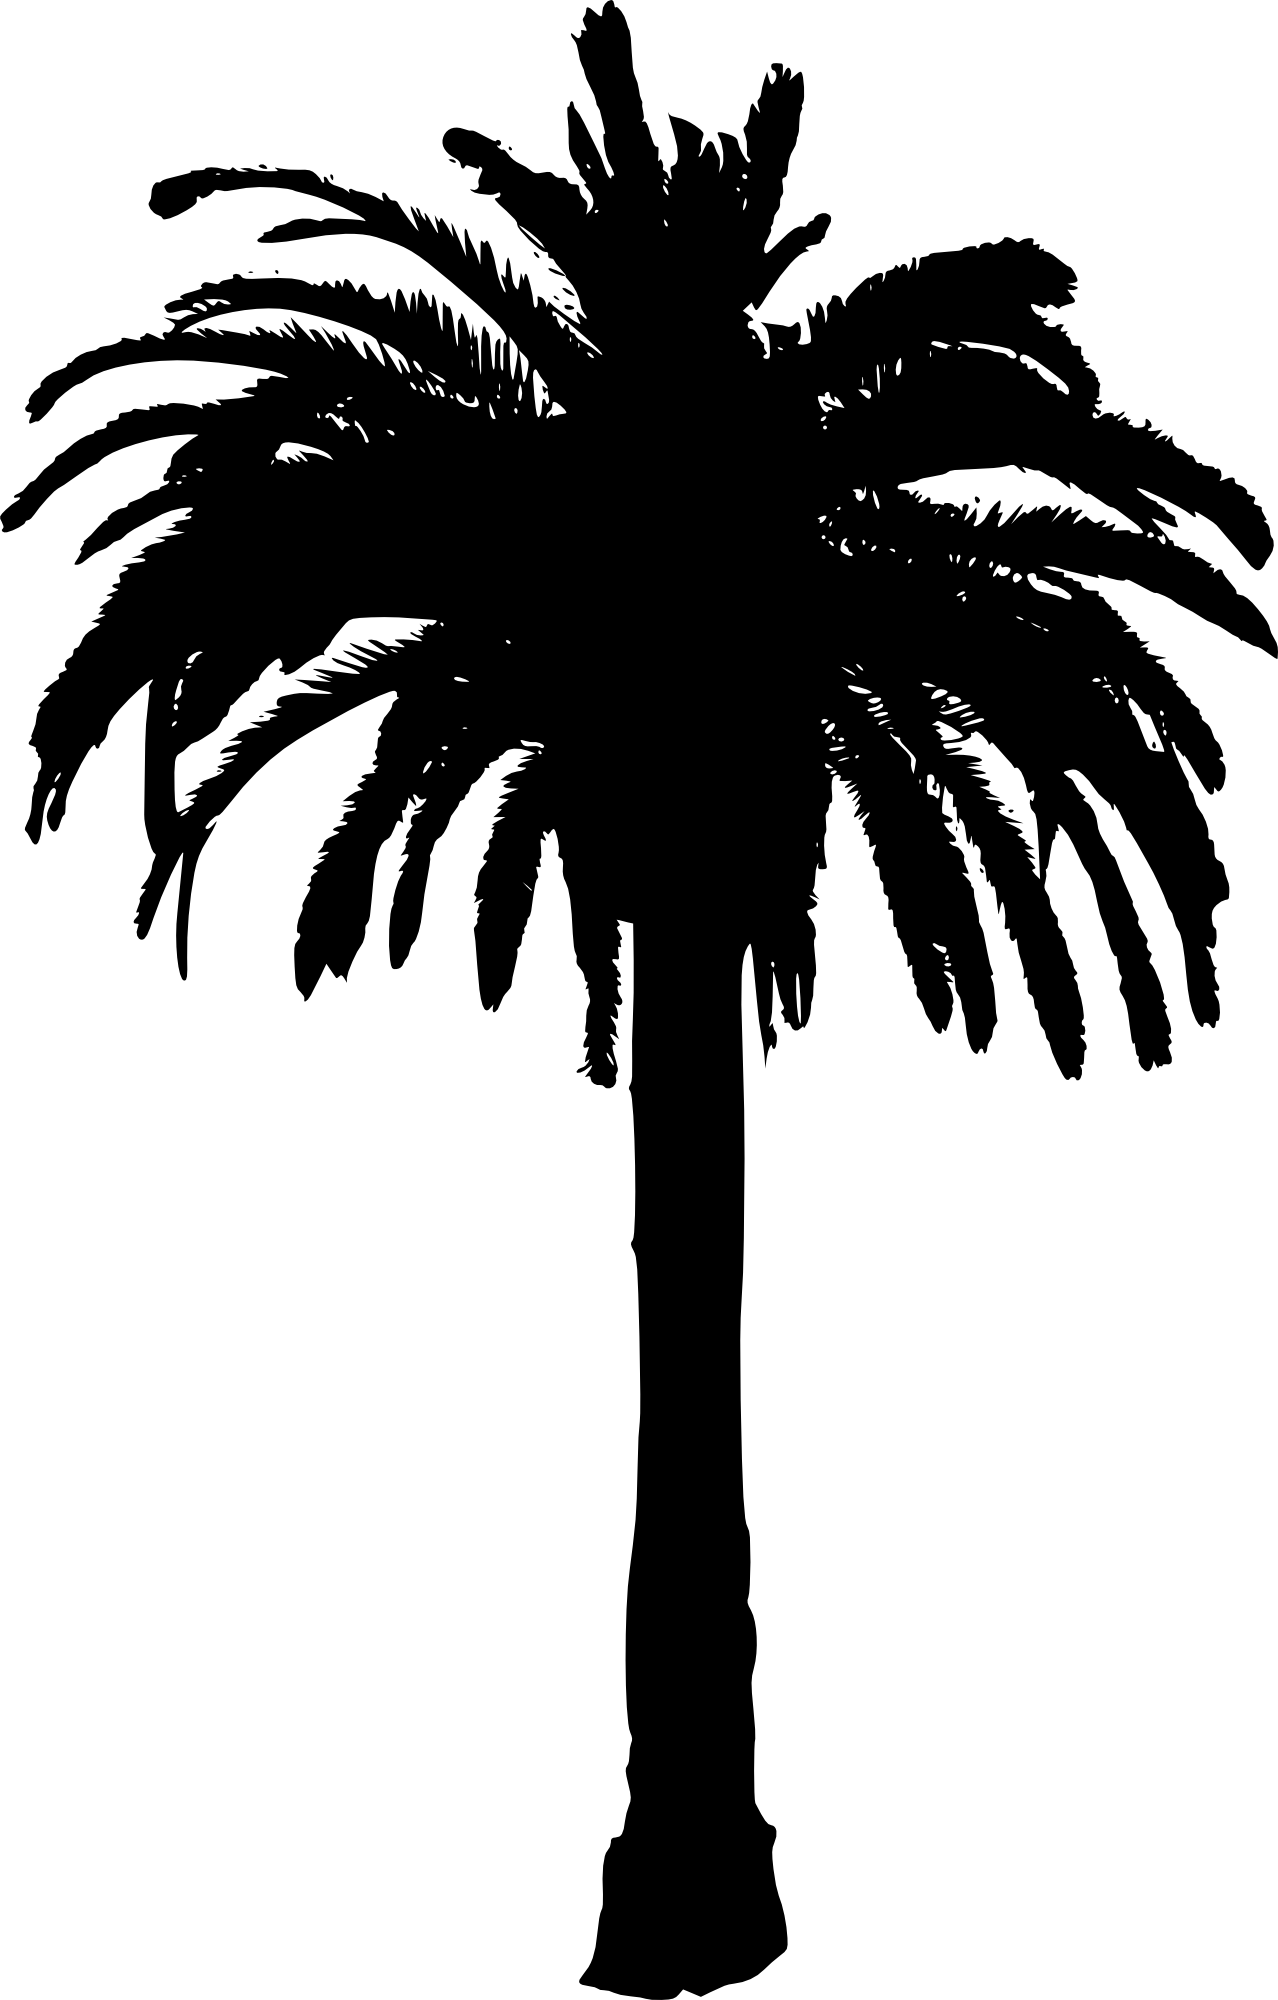 Free sun palm clipart banner stock Bamboo Forest Drawing at GetDrawings.com | Free for personal use ... banner stock